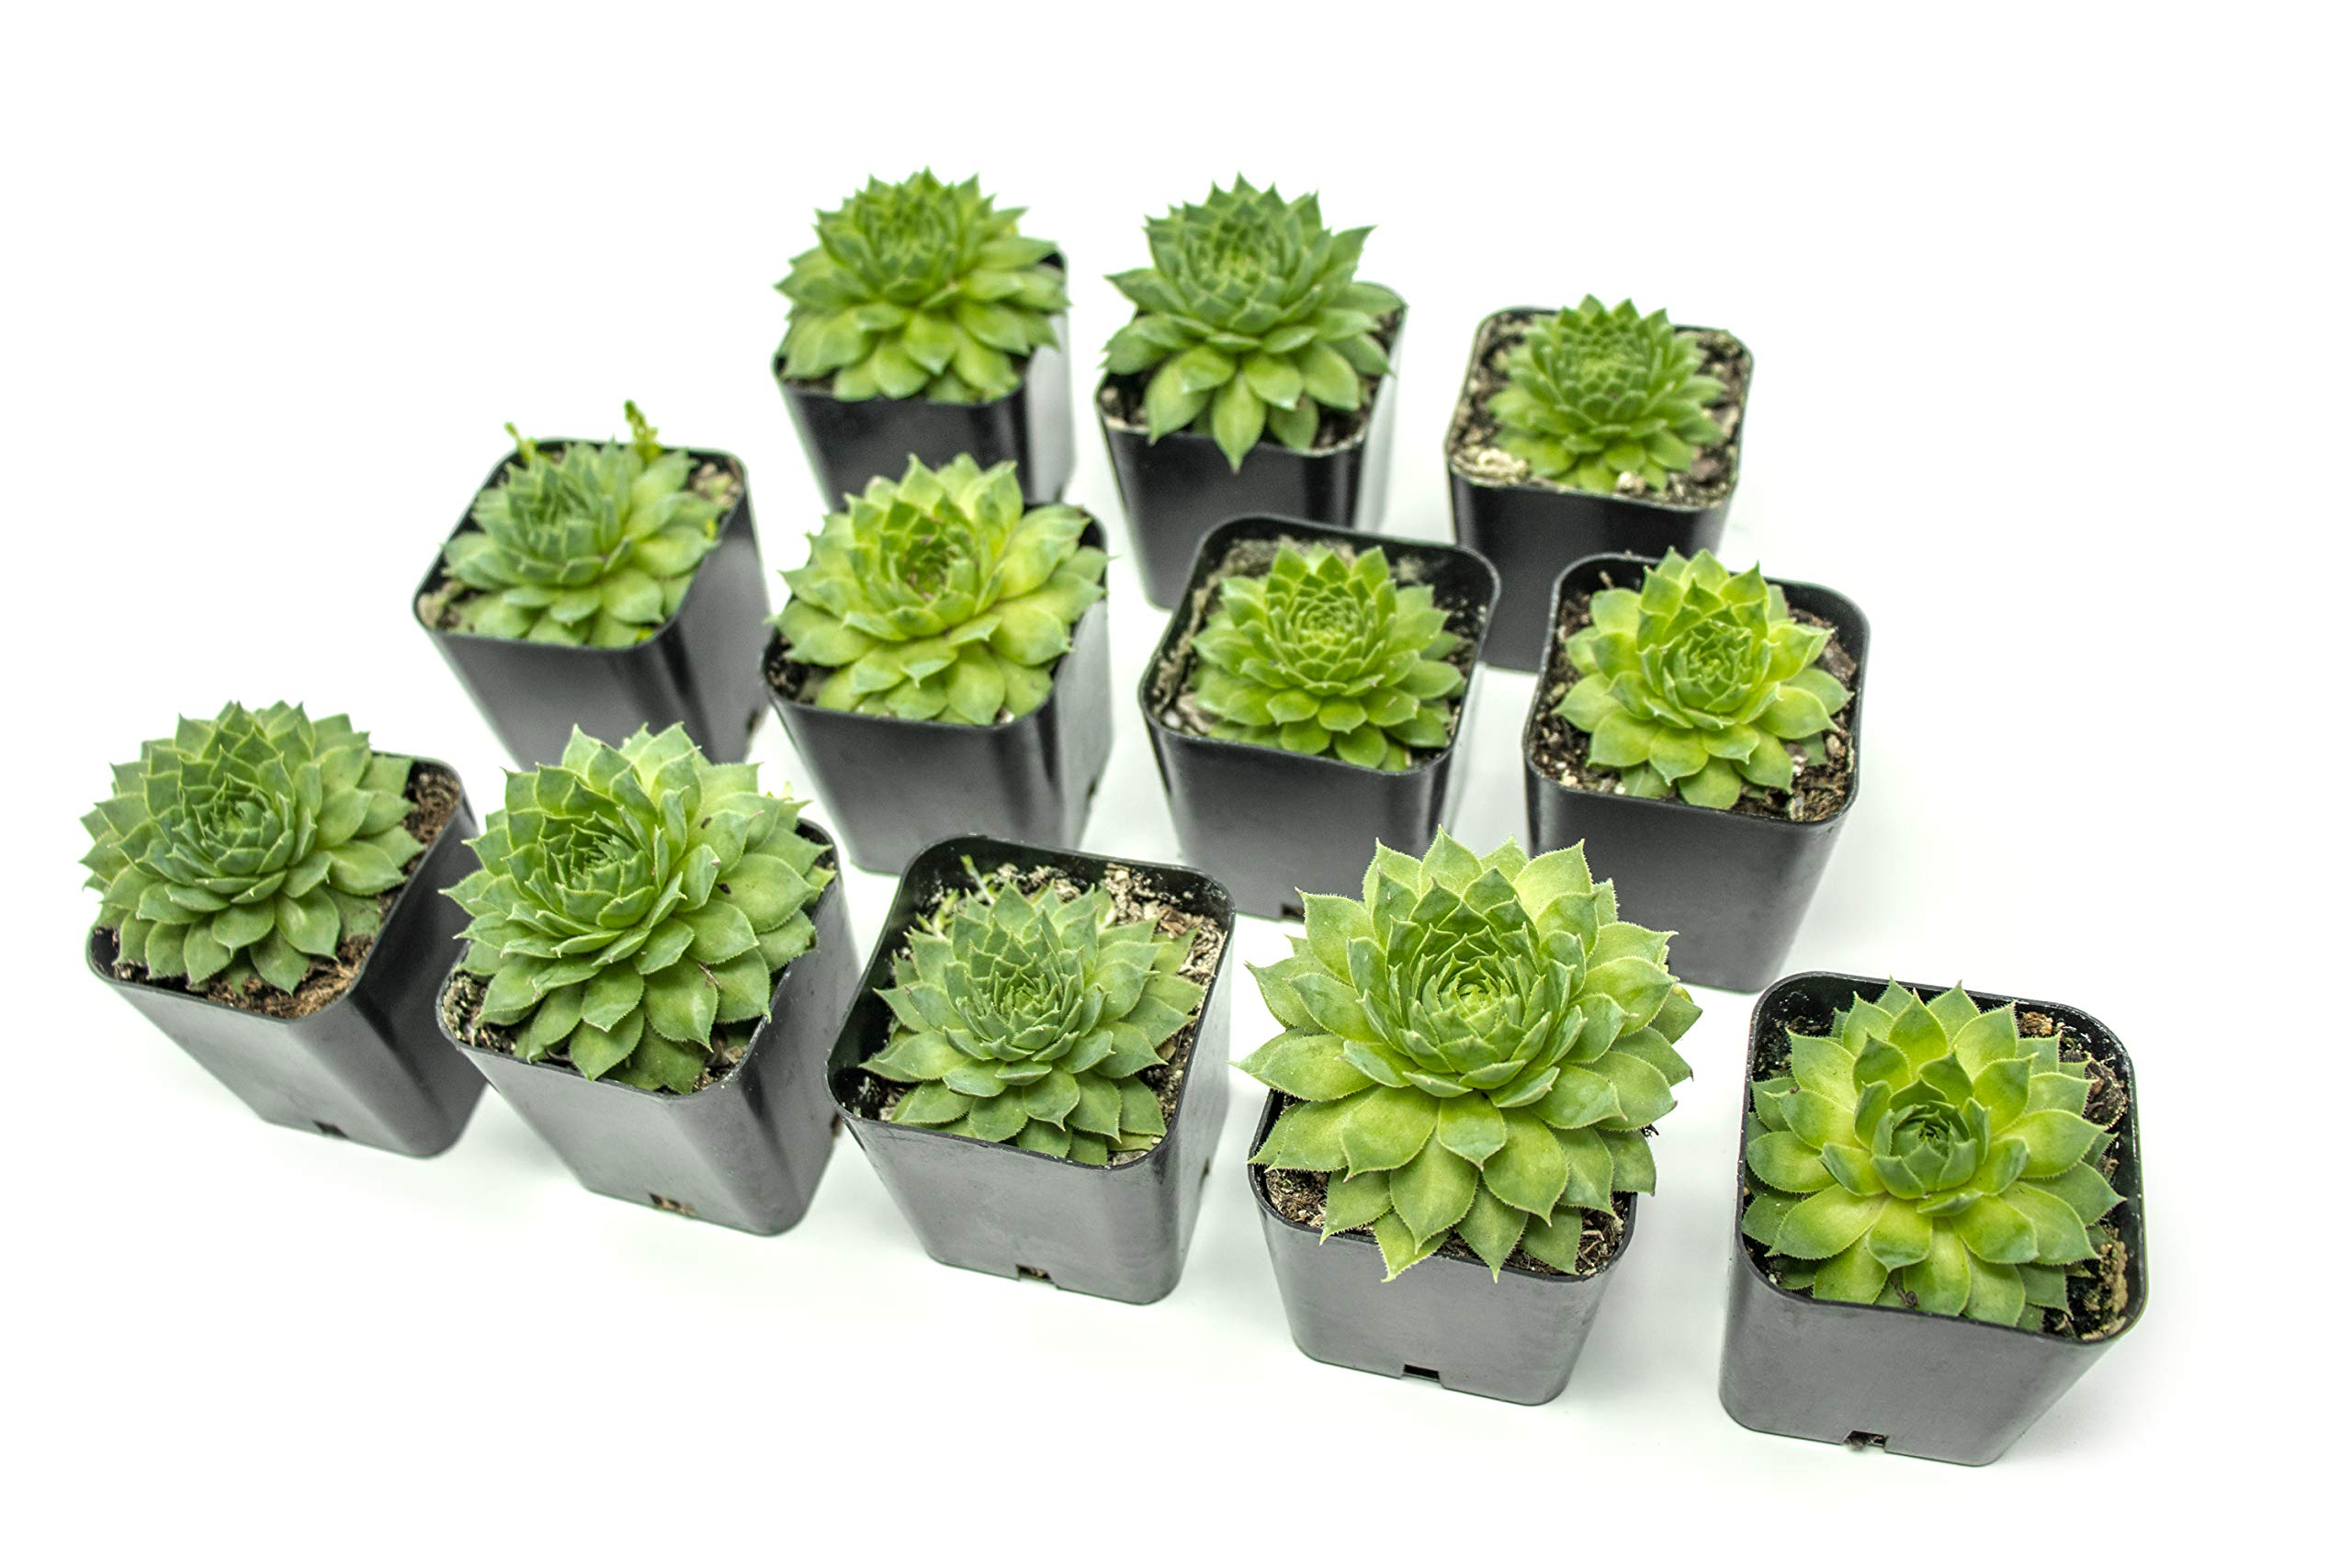 Fractal Succulents(5 Pack) Live Sempervivum Houseleek SucculentRooted in Pots | Flowering Plant Leaves /Geometric Rosettes by Plants for Pets by Plants for Pets (Image #4)